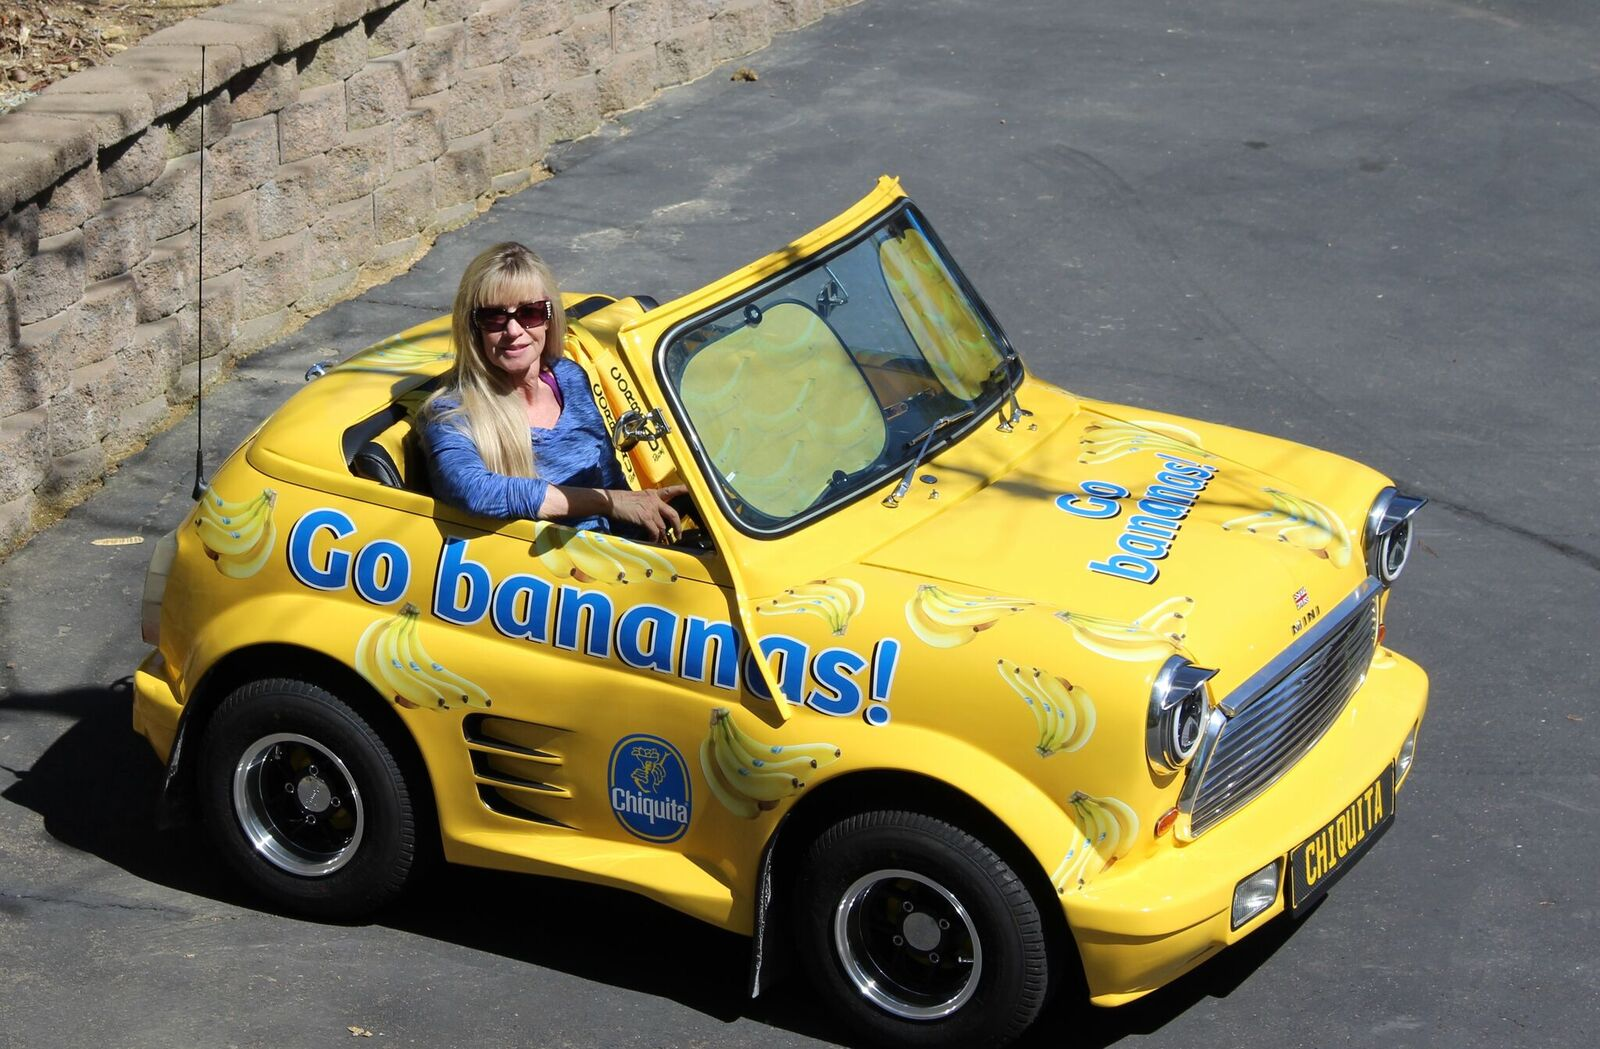 the Nelsons have plans to drive Chiquita to the International Banana Museum